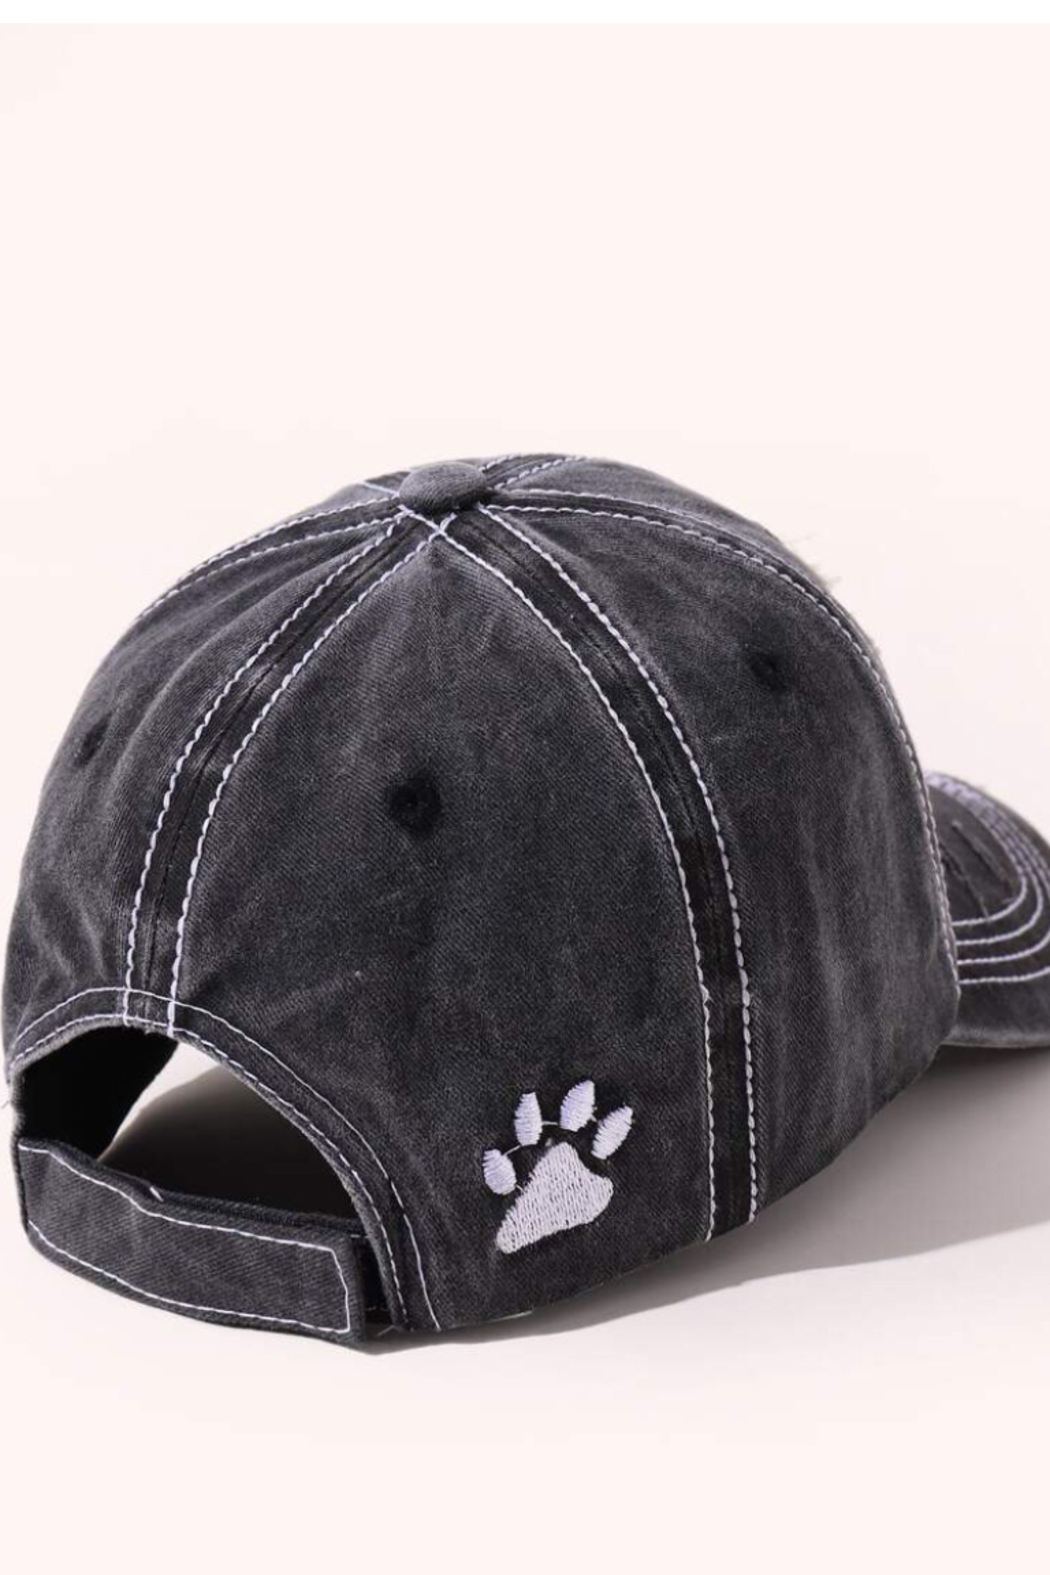 Coco International Distressed baseball hat - Side Cropped Image